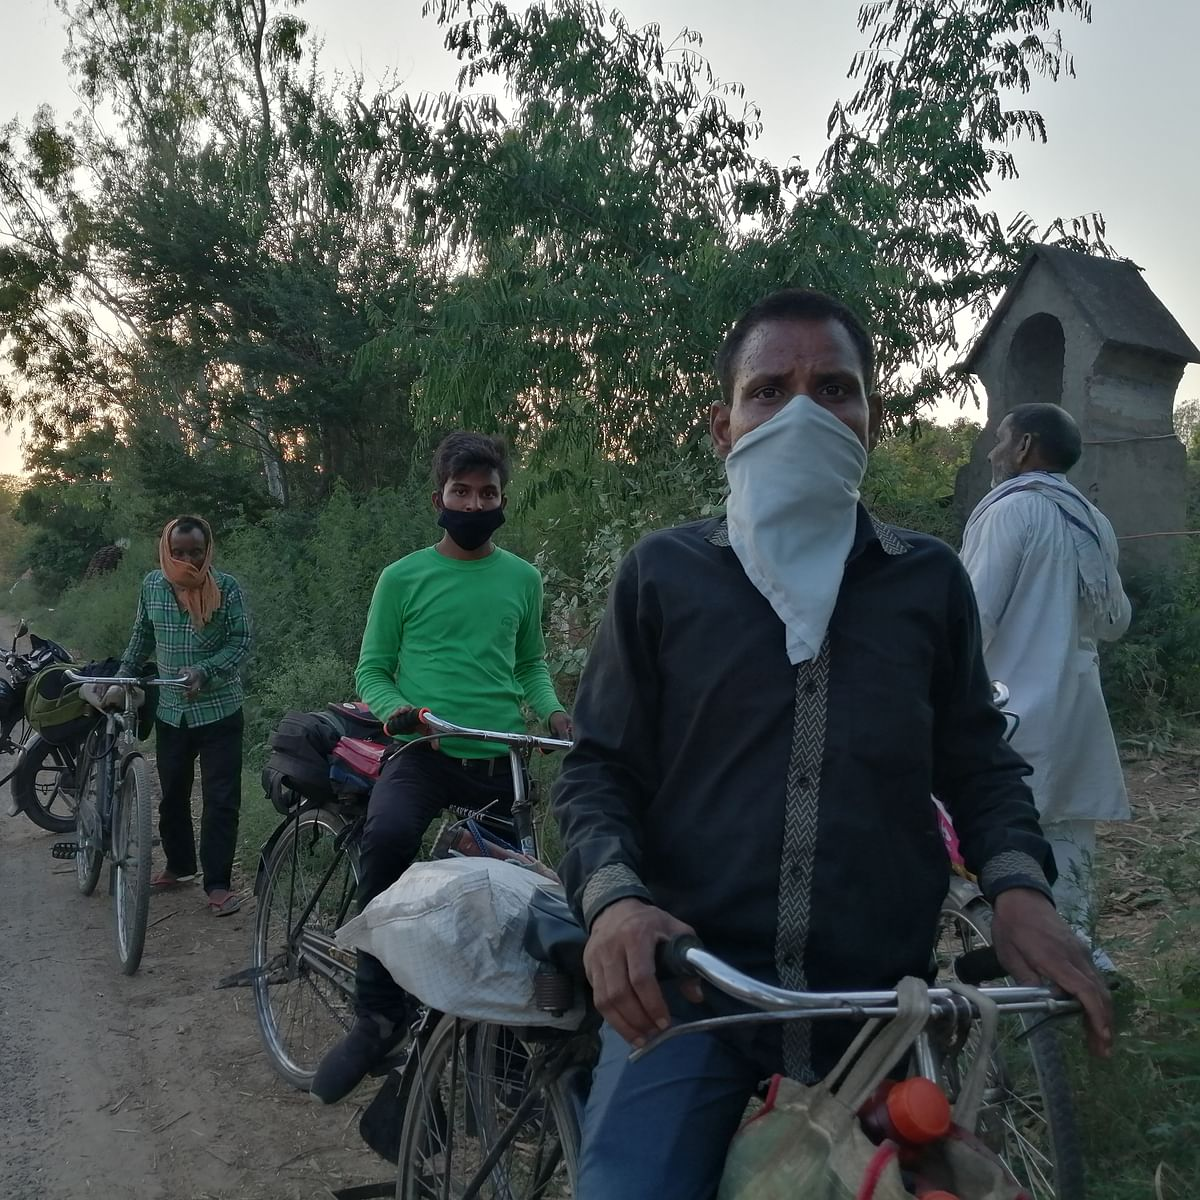 Police contest claim they sold off bicycles of workers for Rs 500 each